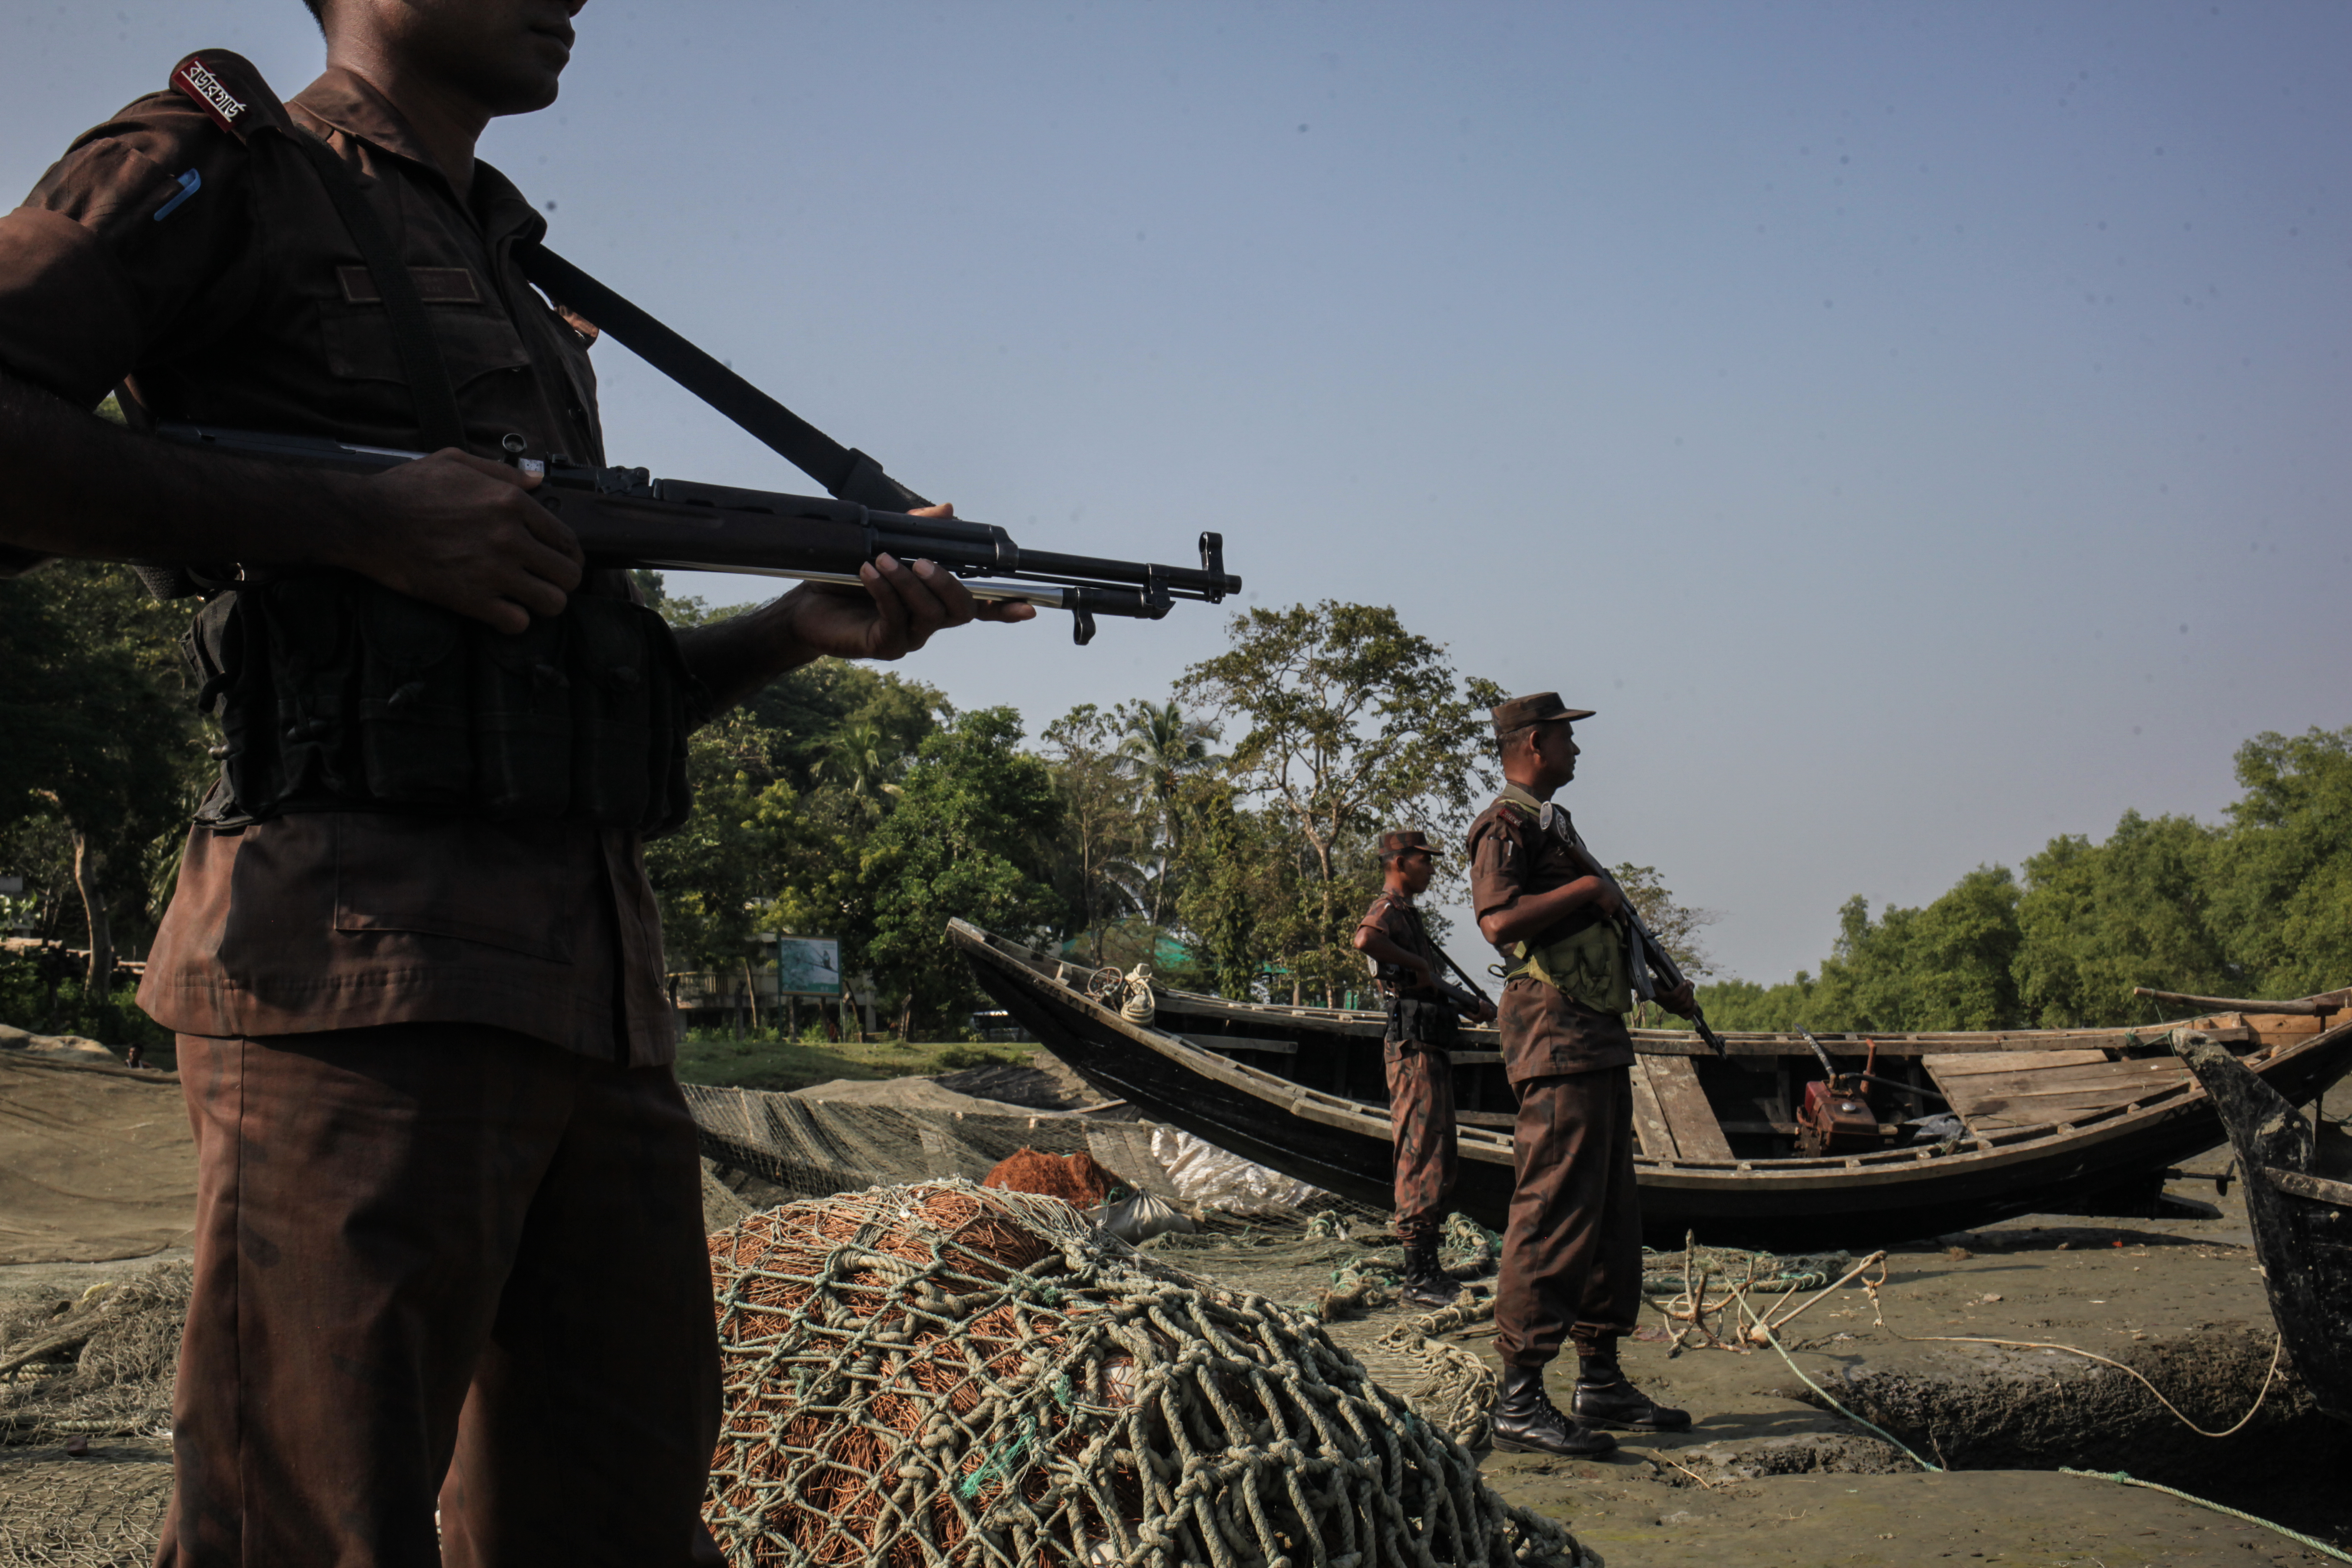 A patrol of Bangladeshi Border Guards attempts to prevent Rohingya refugees from crossing into Bangladesh from Burma, on the banks of the Naf River, near Cox's Bazar, Bangladesh, on Nov. 22, 2016